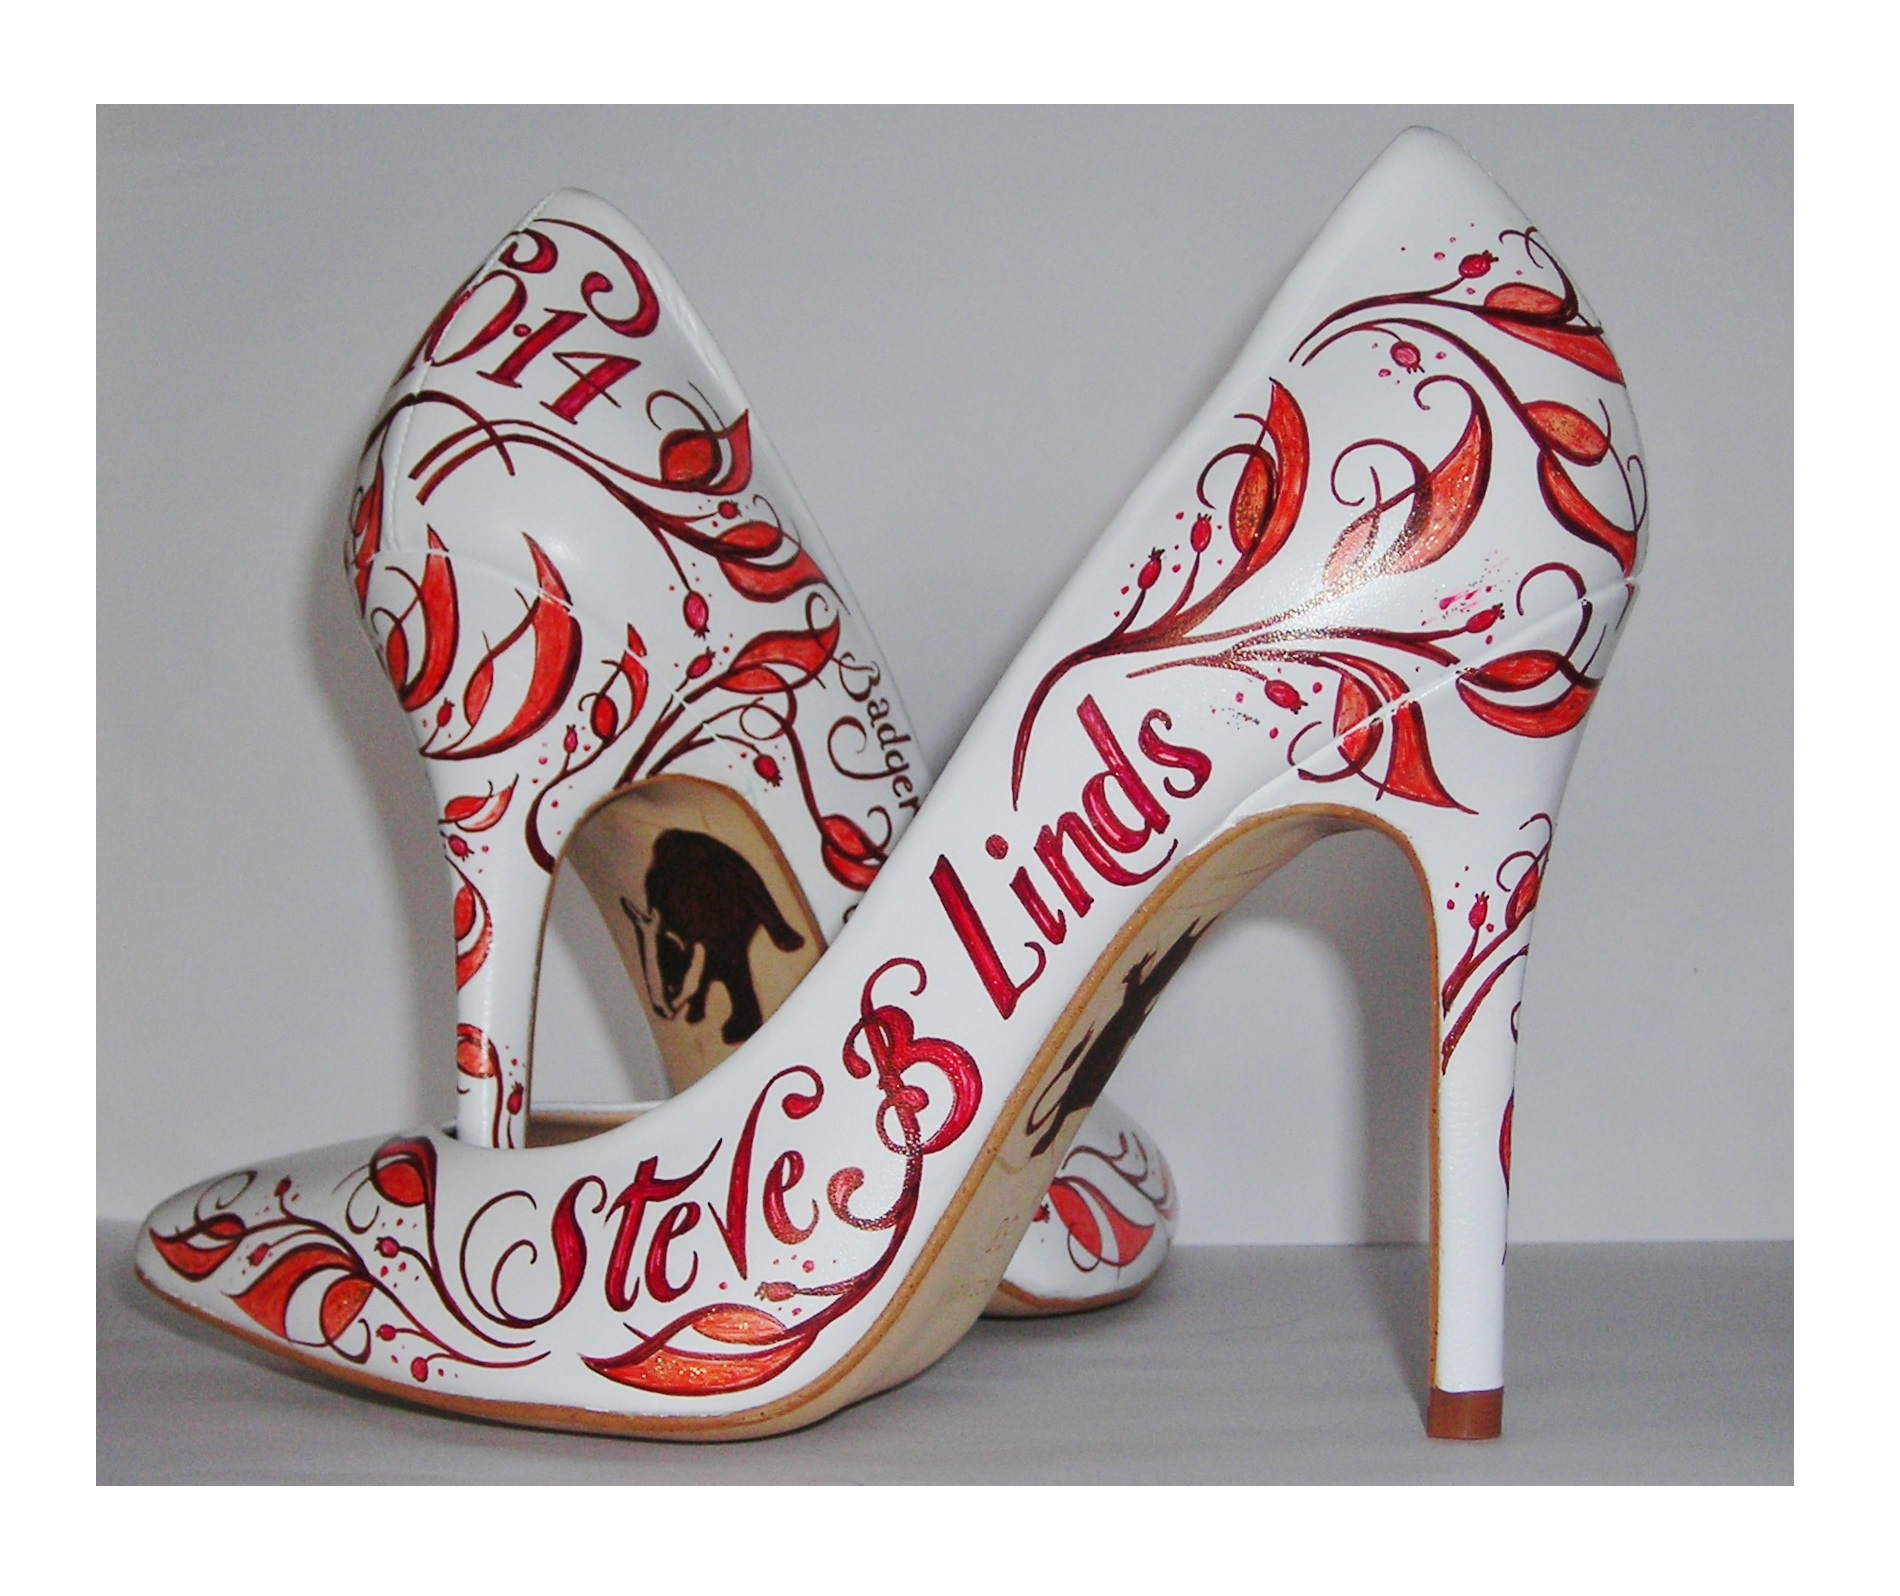 Orange and white autumnal hand painted wedding shoes